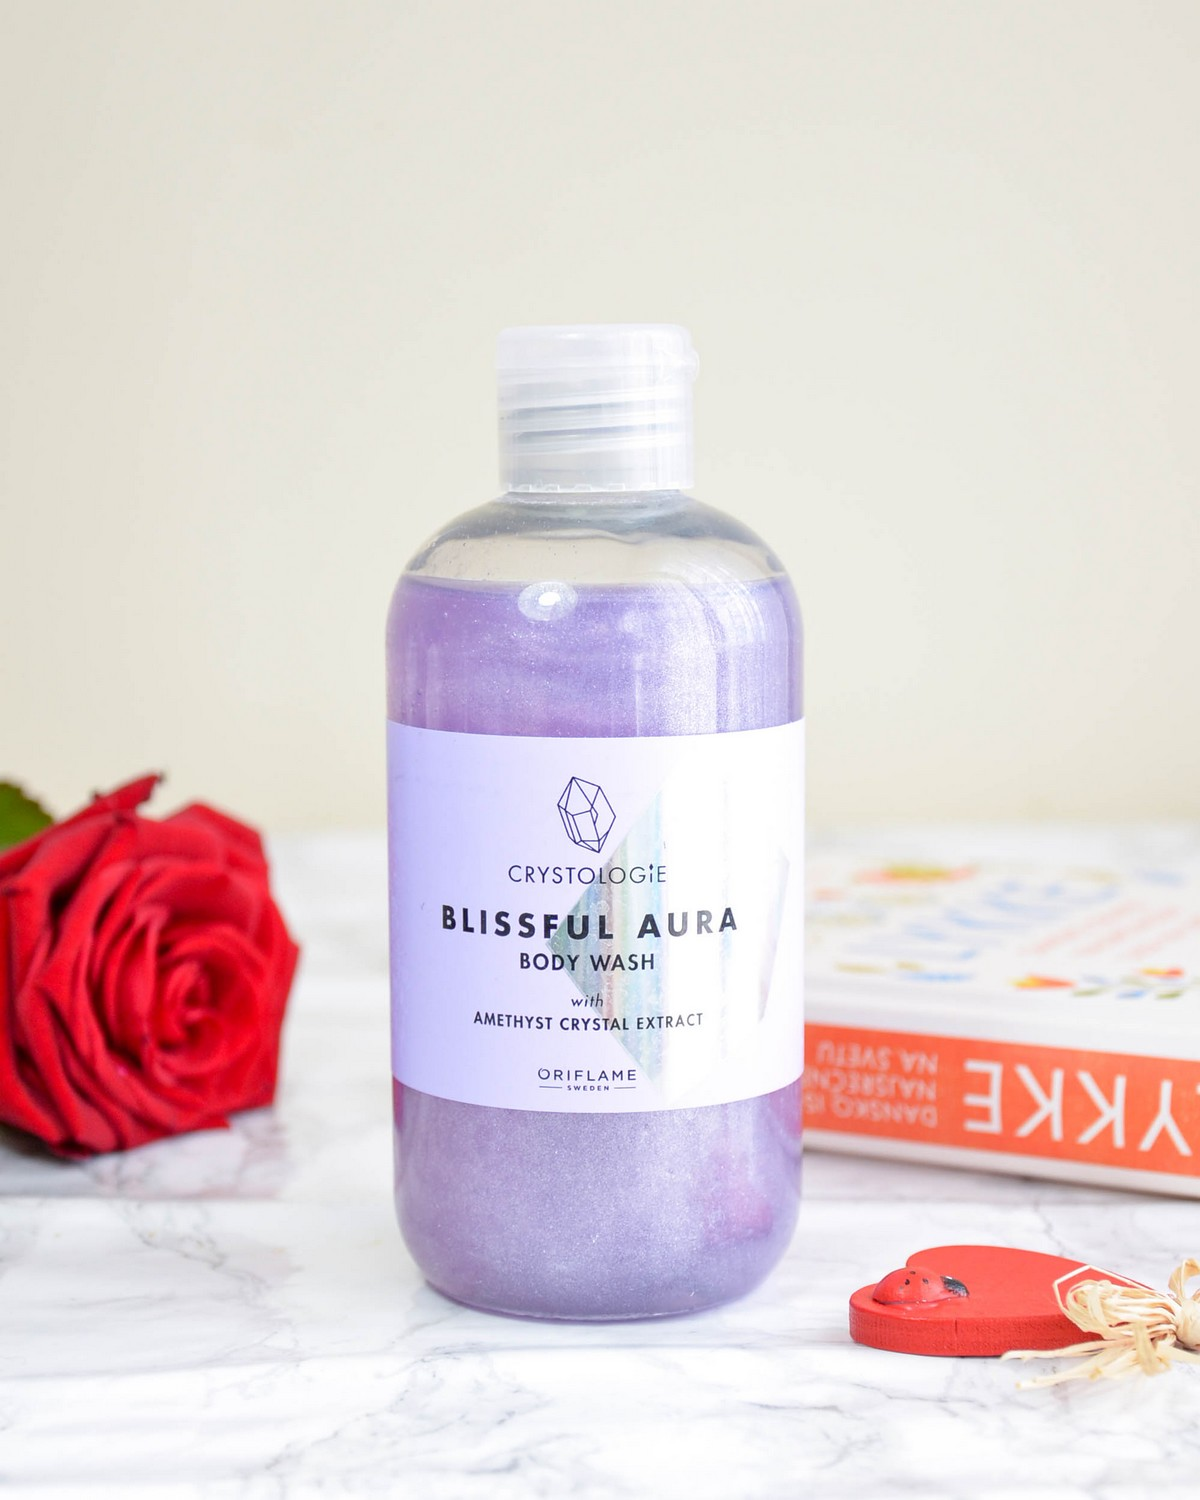 Oriflame Crystologie Blissful Aura Beauty Line Body Wash